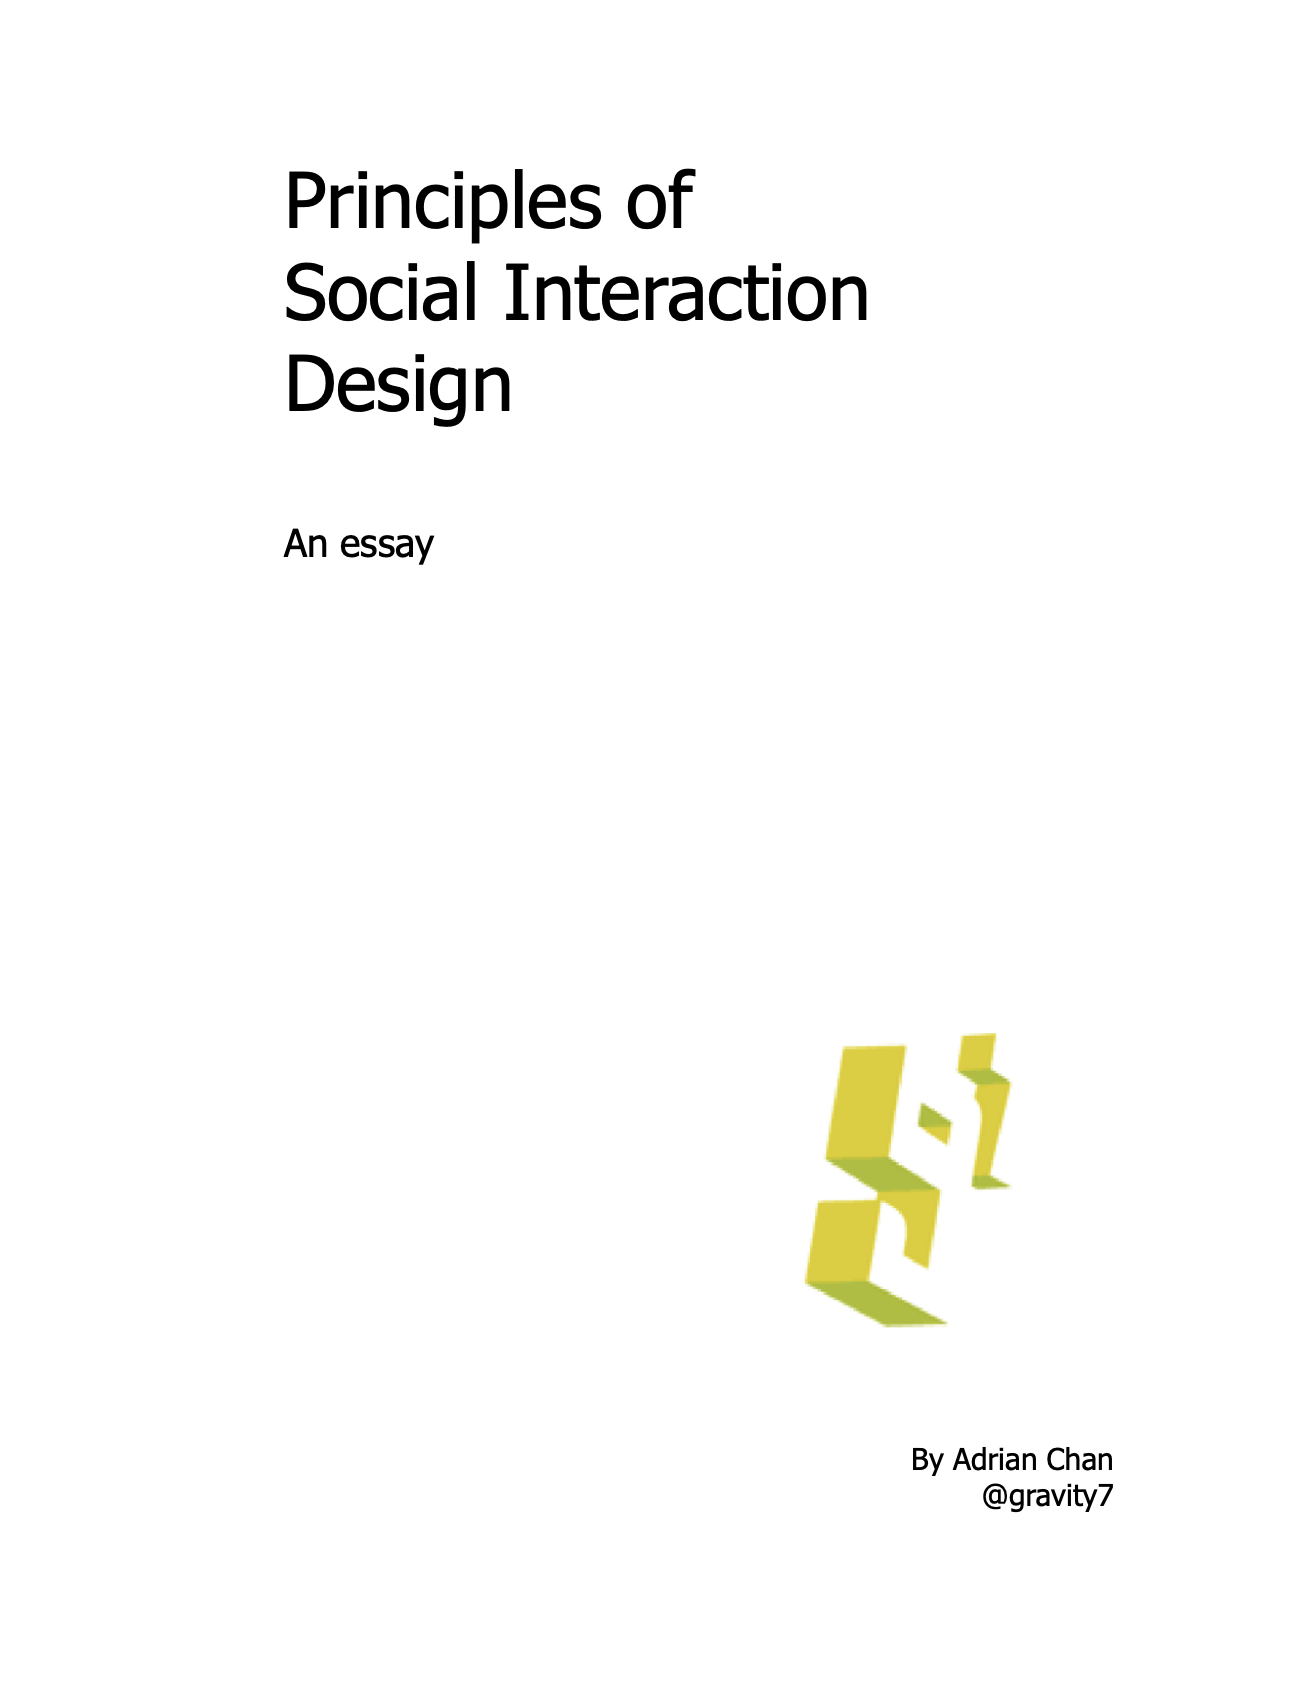 Principles of Social Interaction Design